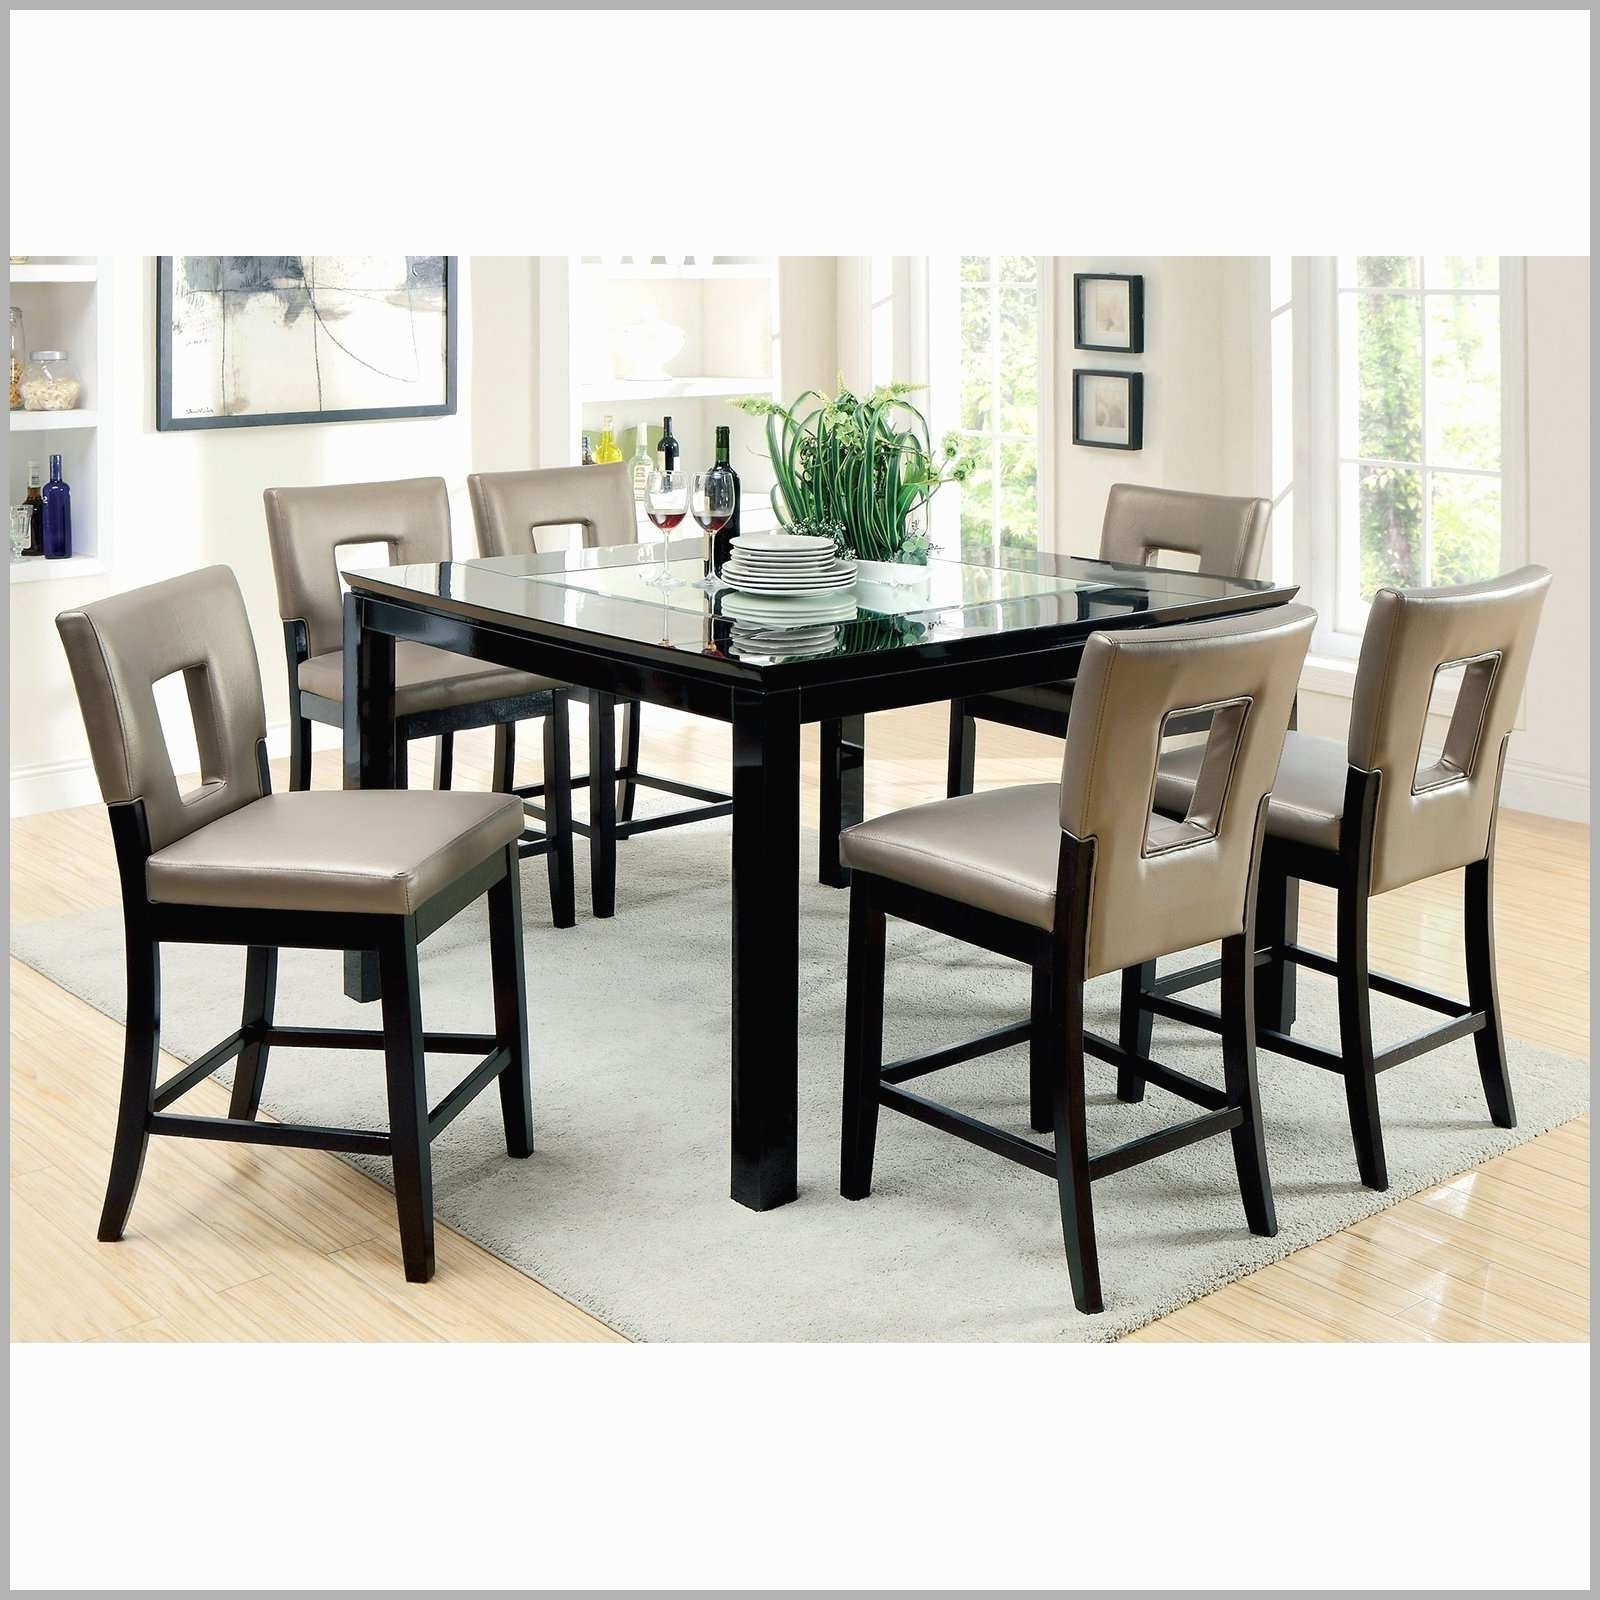 Recent Cheap Dining Table Sets Near Me Awesome 8 Seater Dining Table Set Inside Cheap 8 Seater Dining Tables (View 11 of 25)